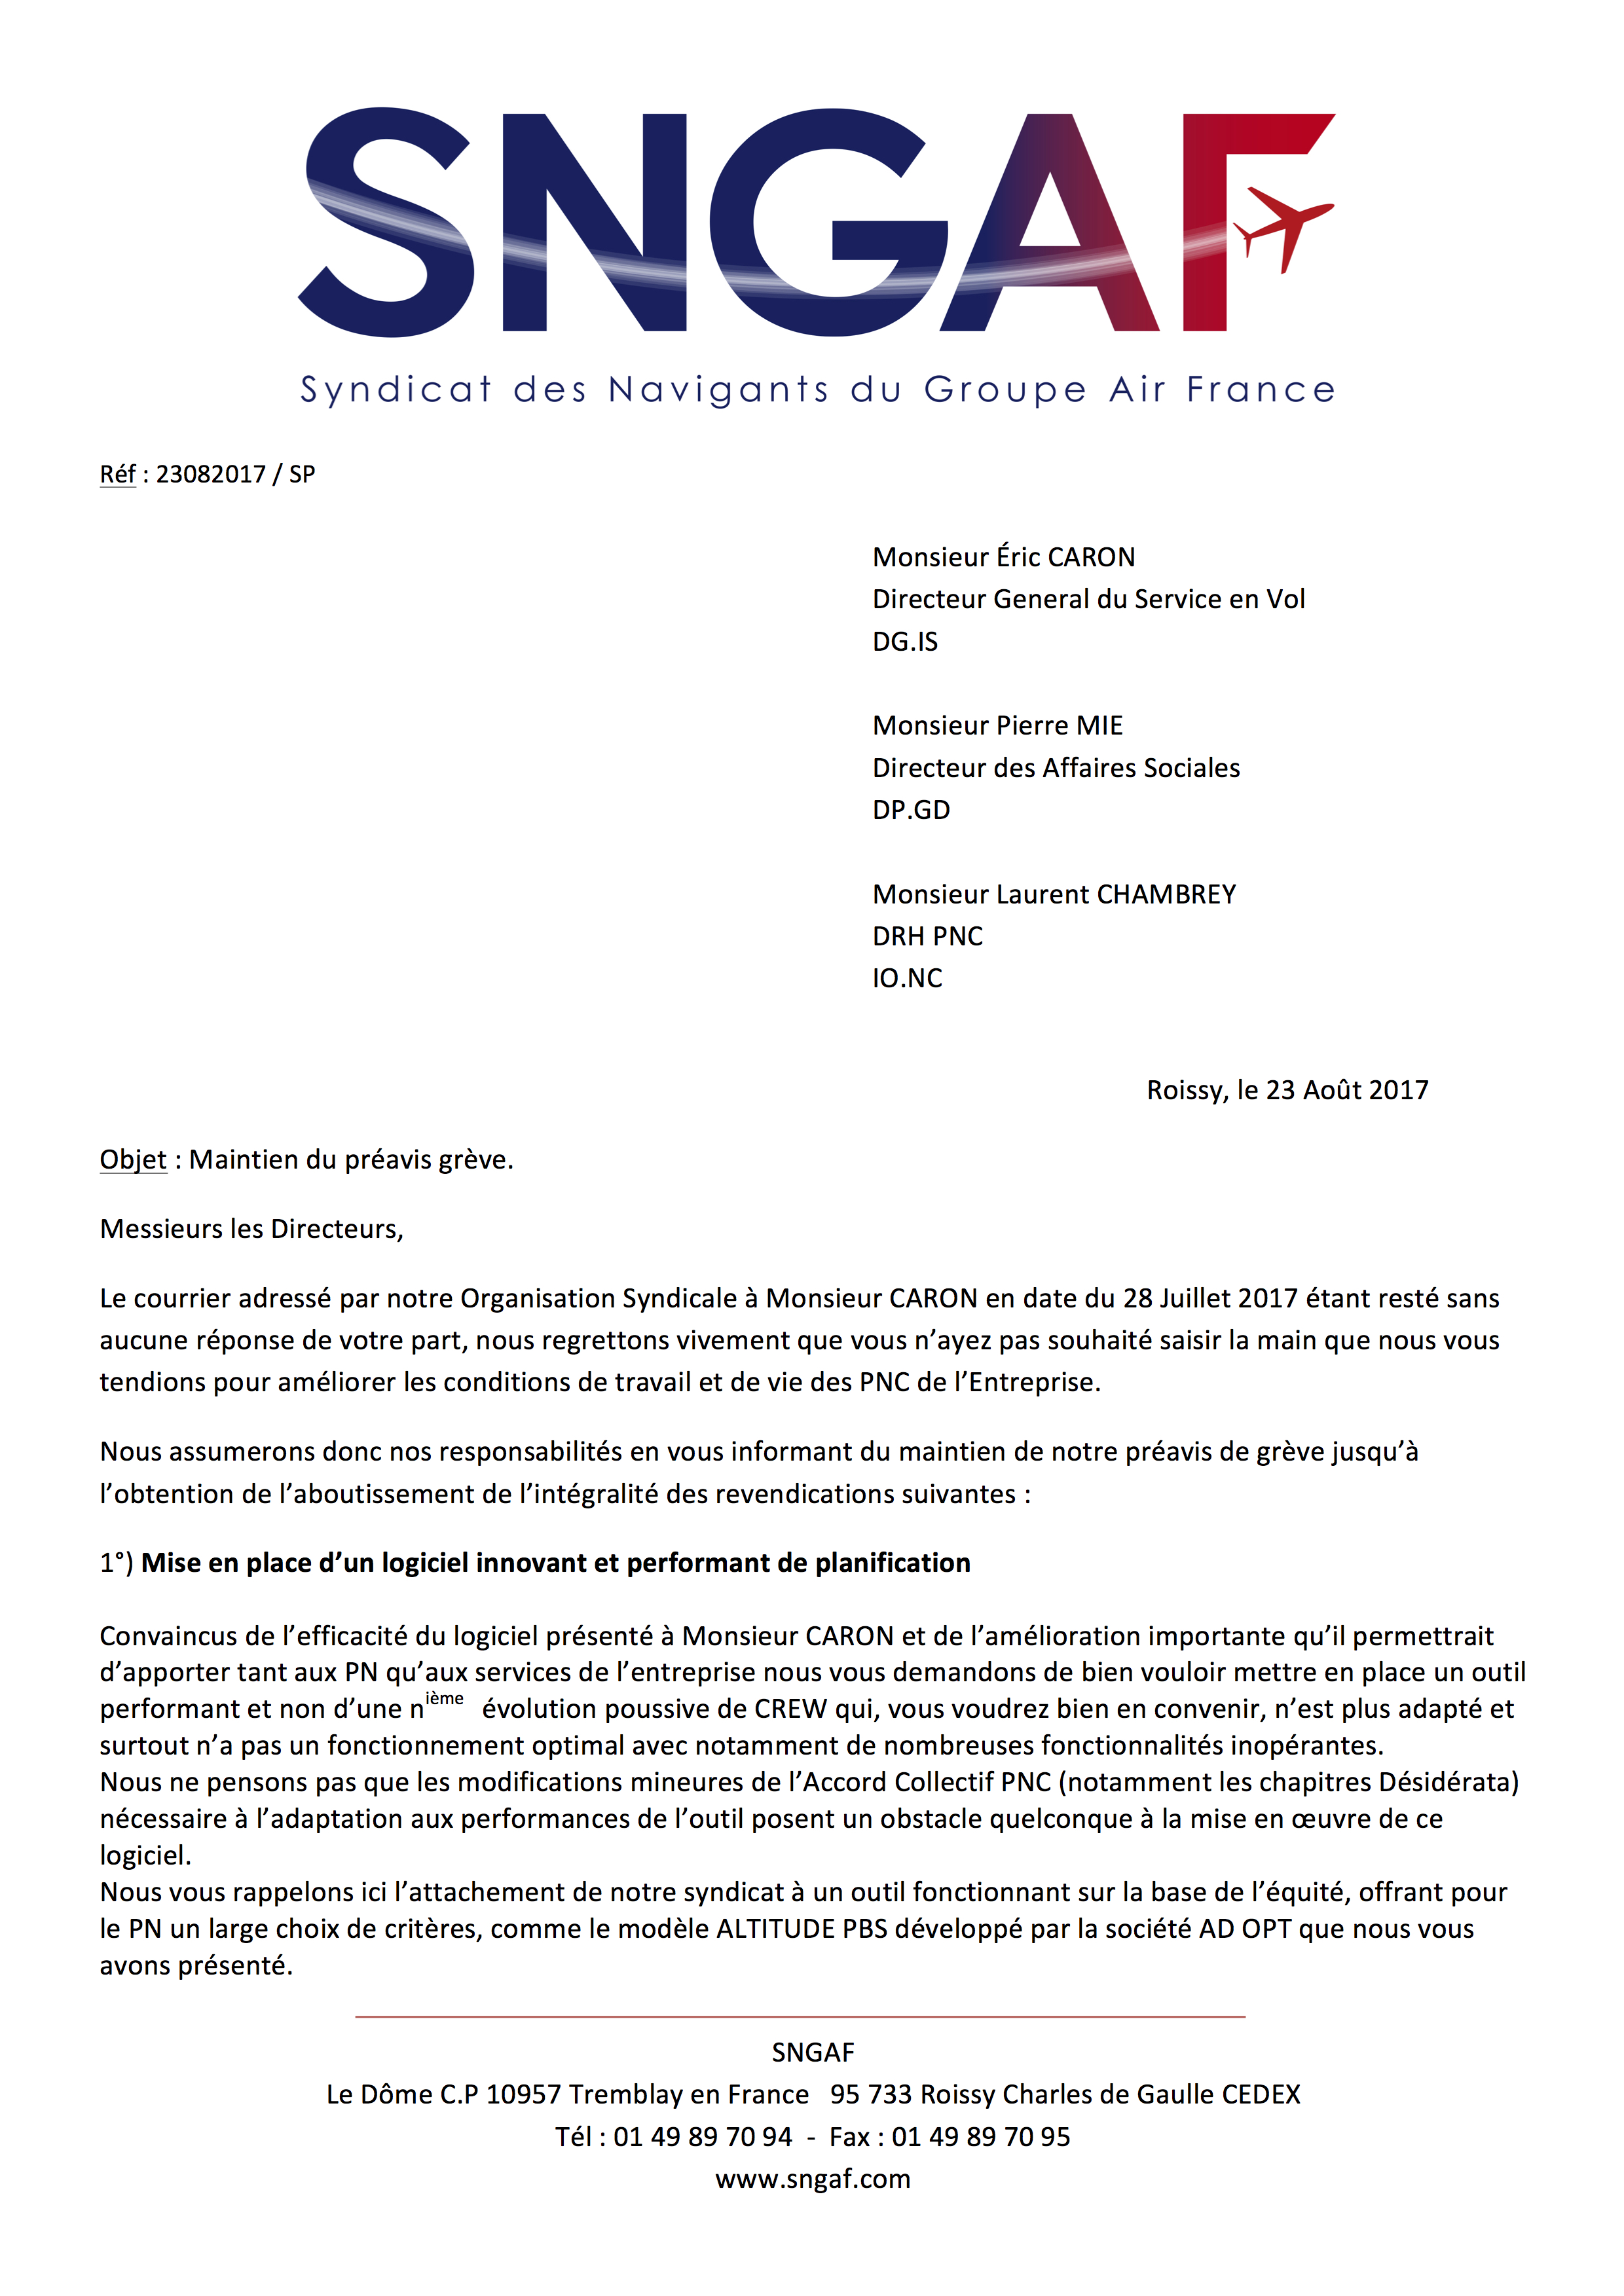 20170823 Courrier prolongation greve a compter du 1er septembre